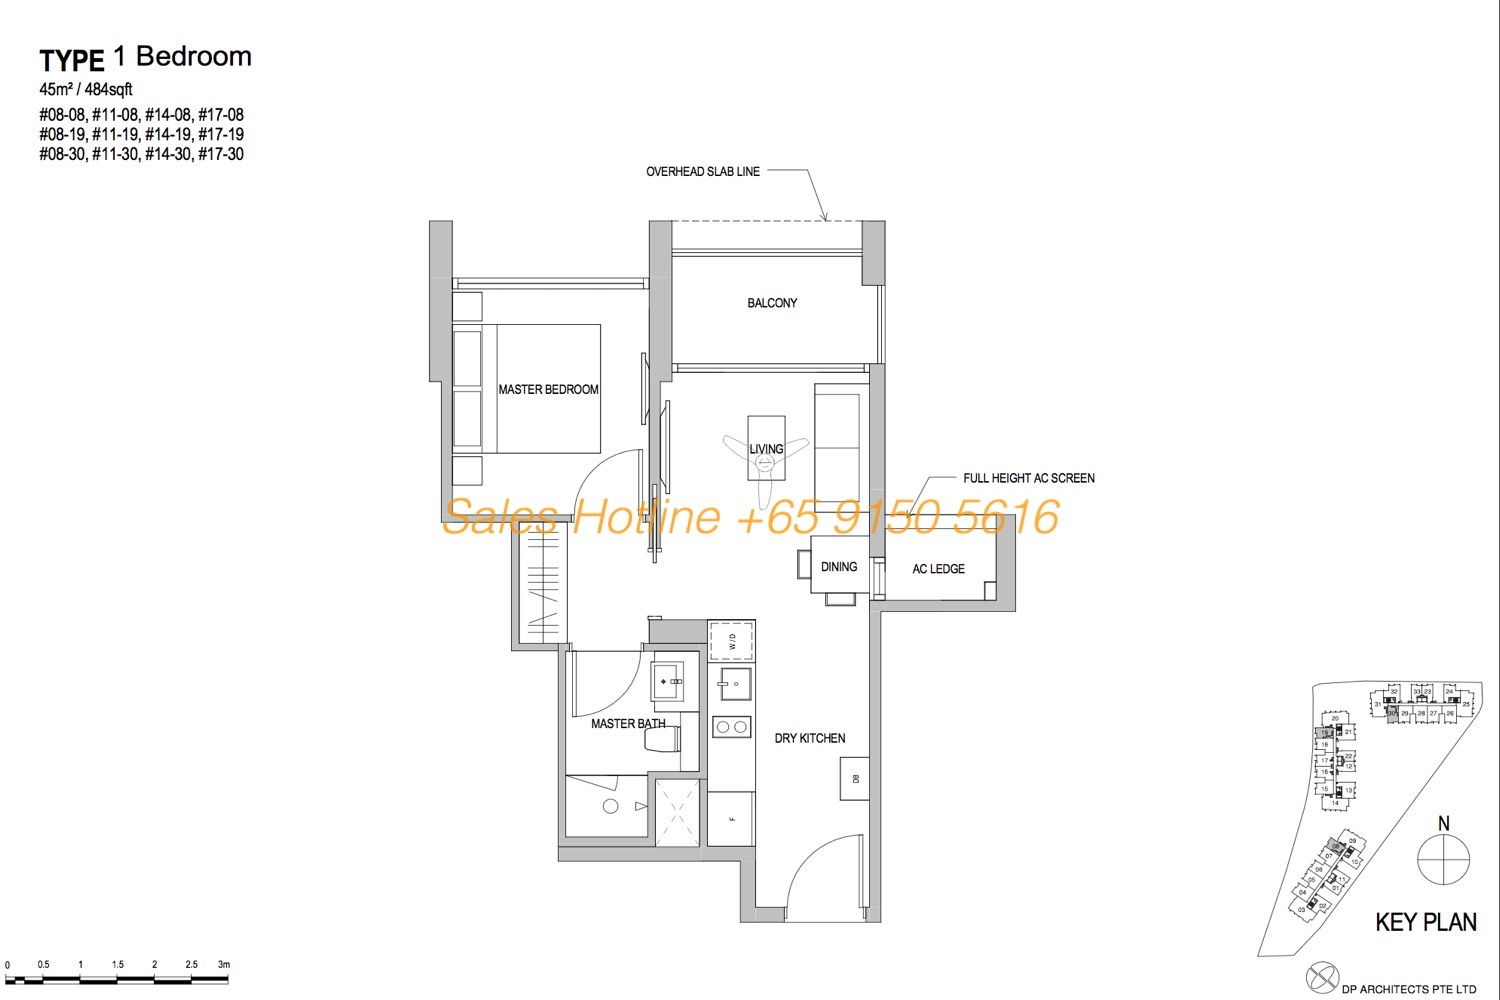 Park Place Residences Floor Plan - 1 Bedroom